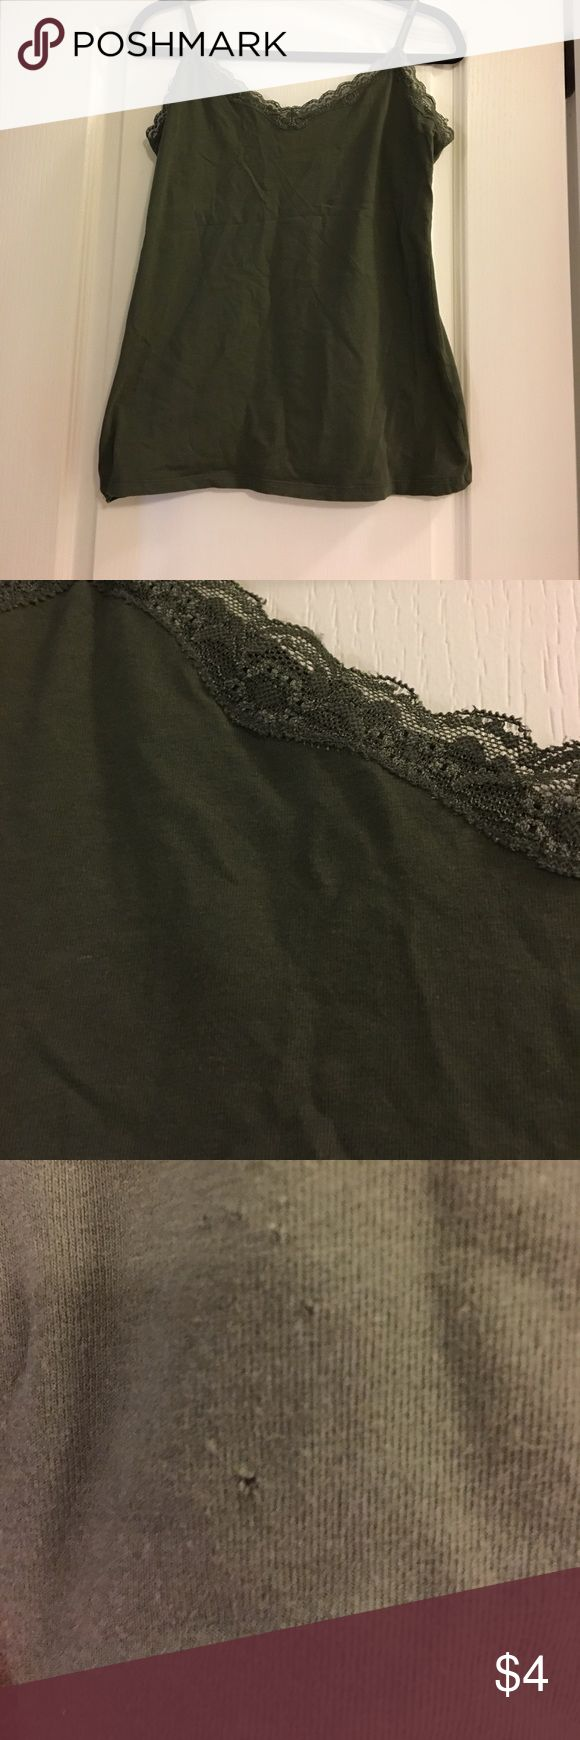 Lace trimmed army green cami Lace trimmed army green cami from Old Navy.  Two tiny holes as indicated in picture.  Barely noticeable and perfect if worn under another garment. Old Navy Tops Camisoles